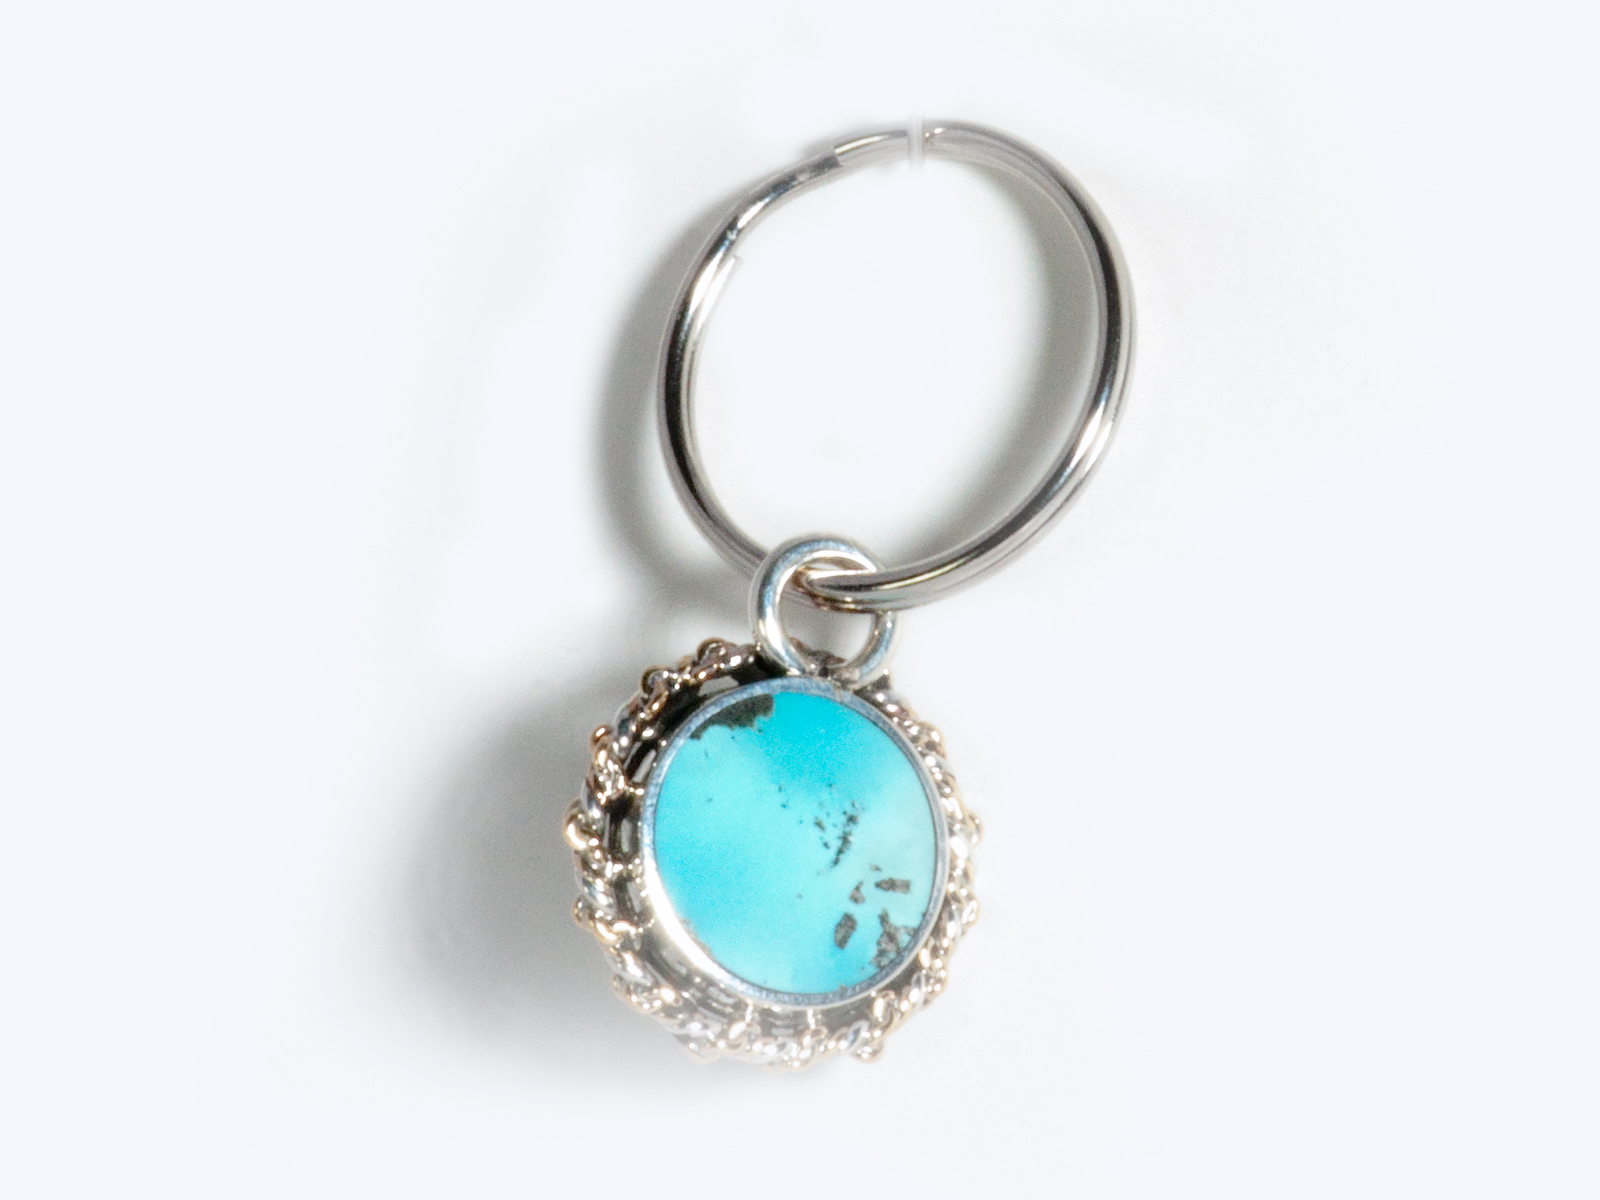 Turquoise Key Chain